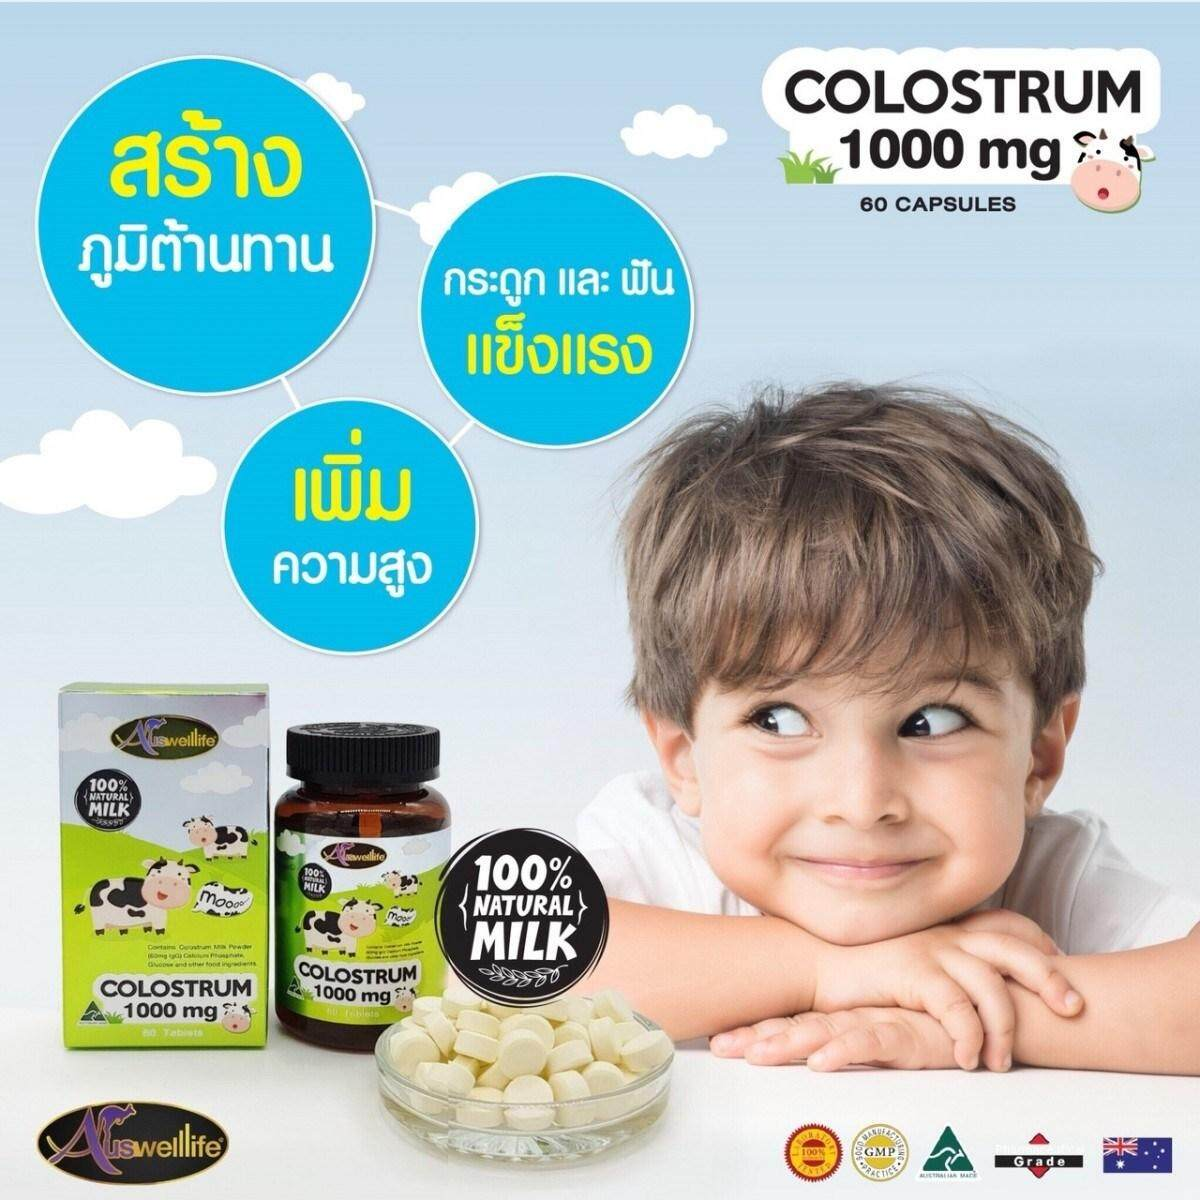 Auswelllife Colostrum 5.jpg